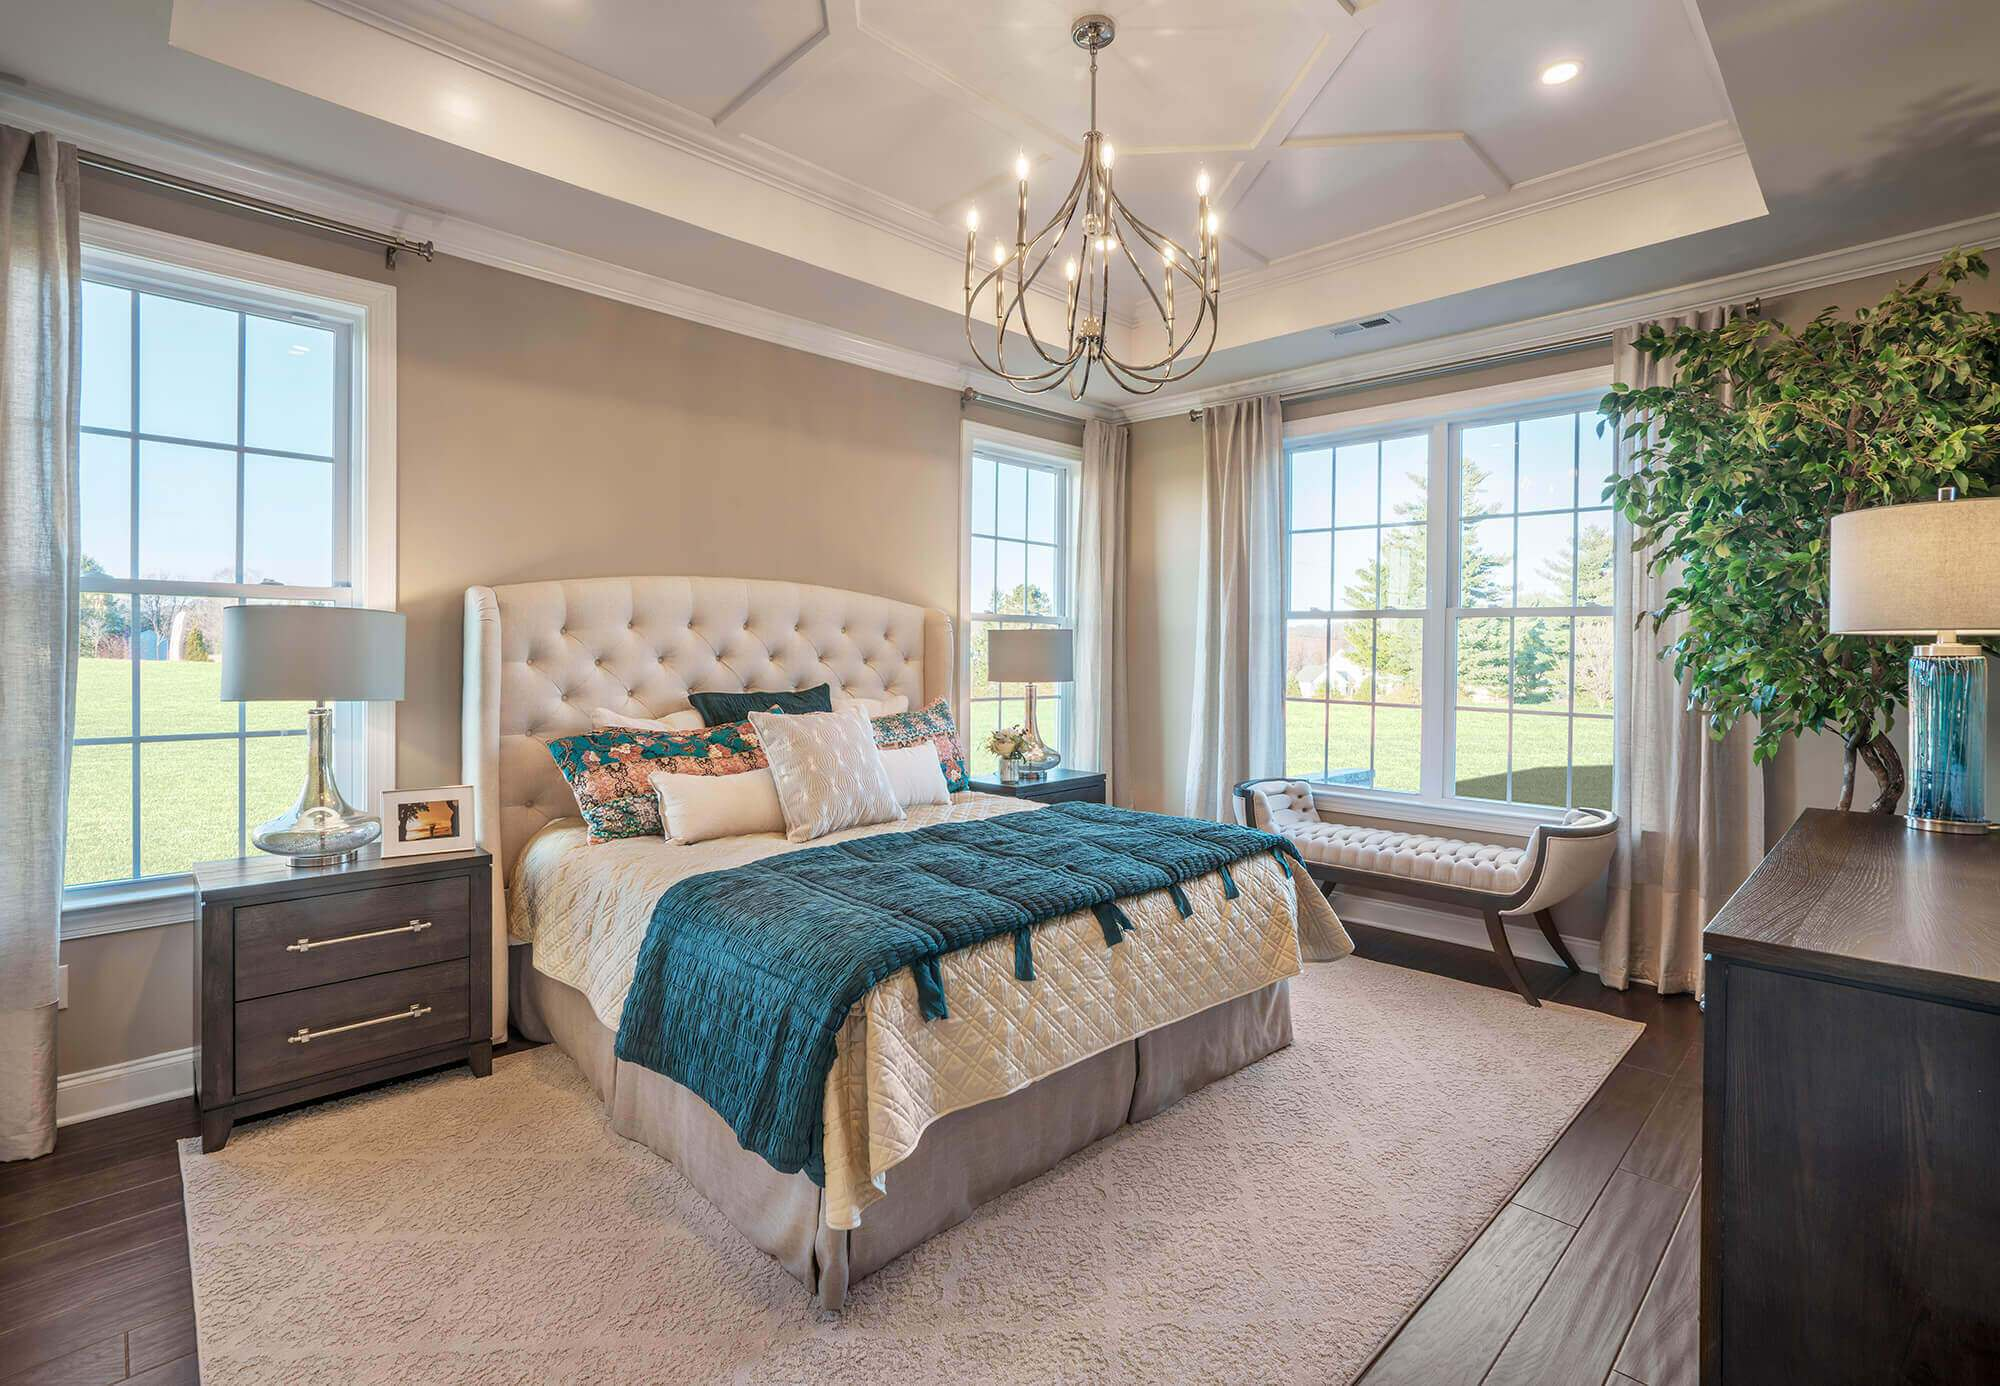 Bedroom featured in The Washington By Traditions of America in Pittsburgh, PA